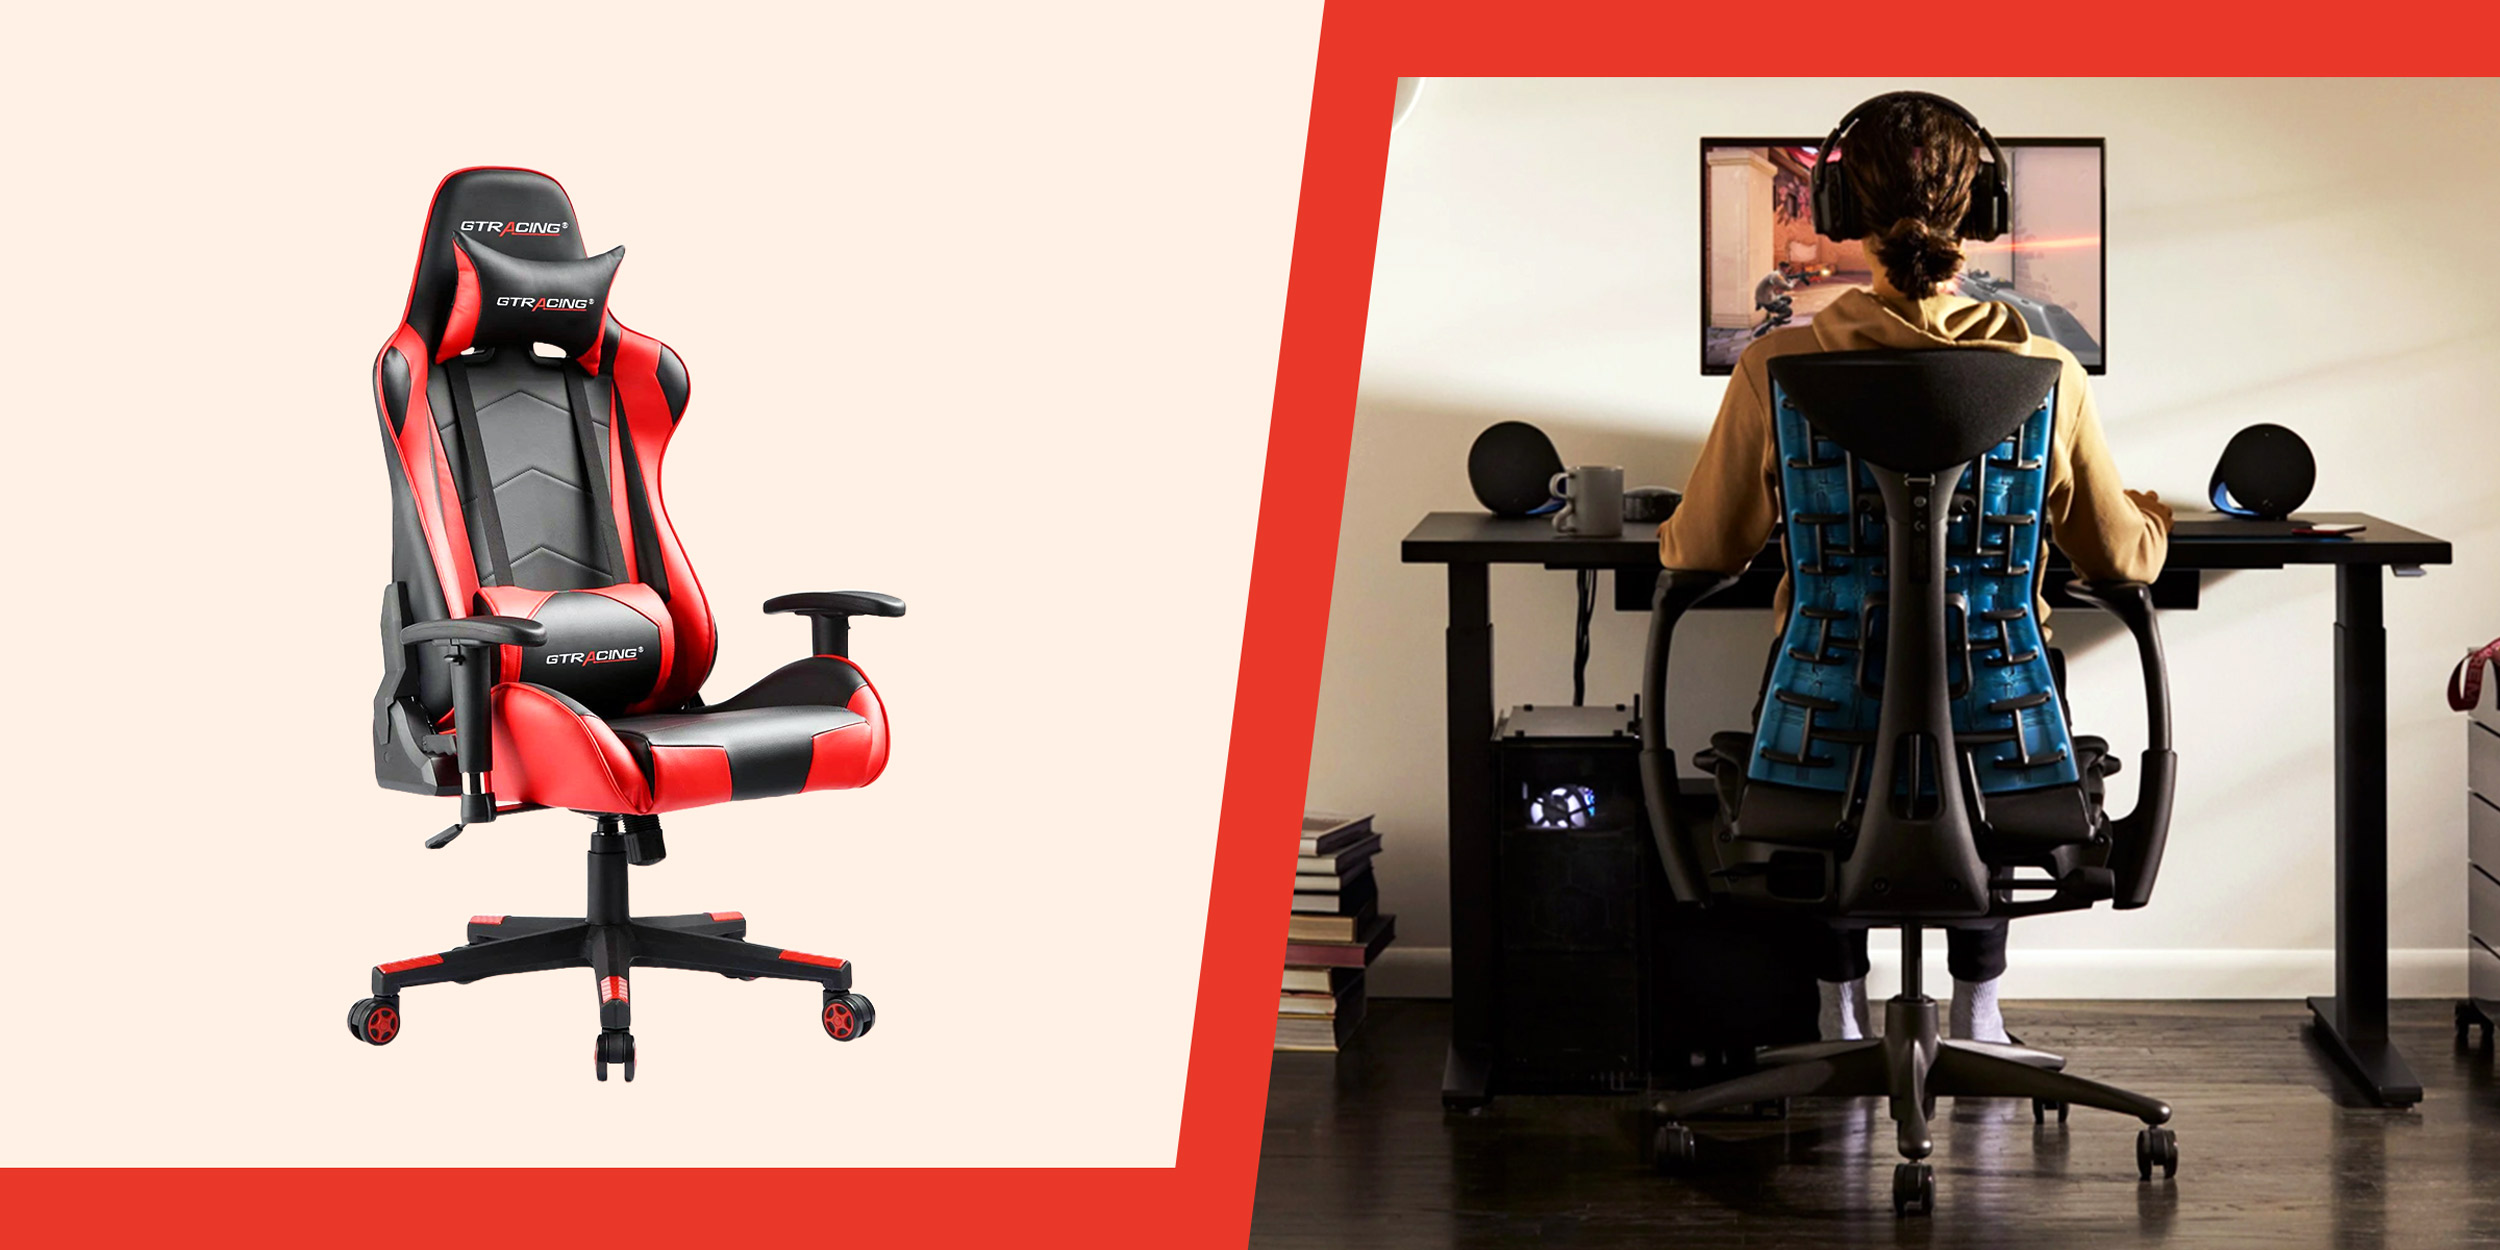 Gaming Chair Guide Expert Shares How To Buy A Gaming Chair